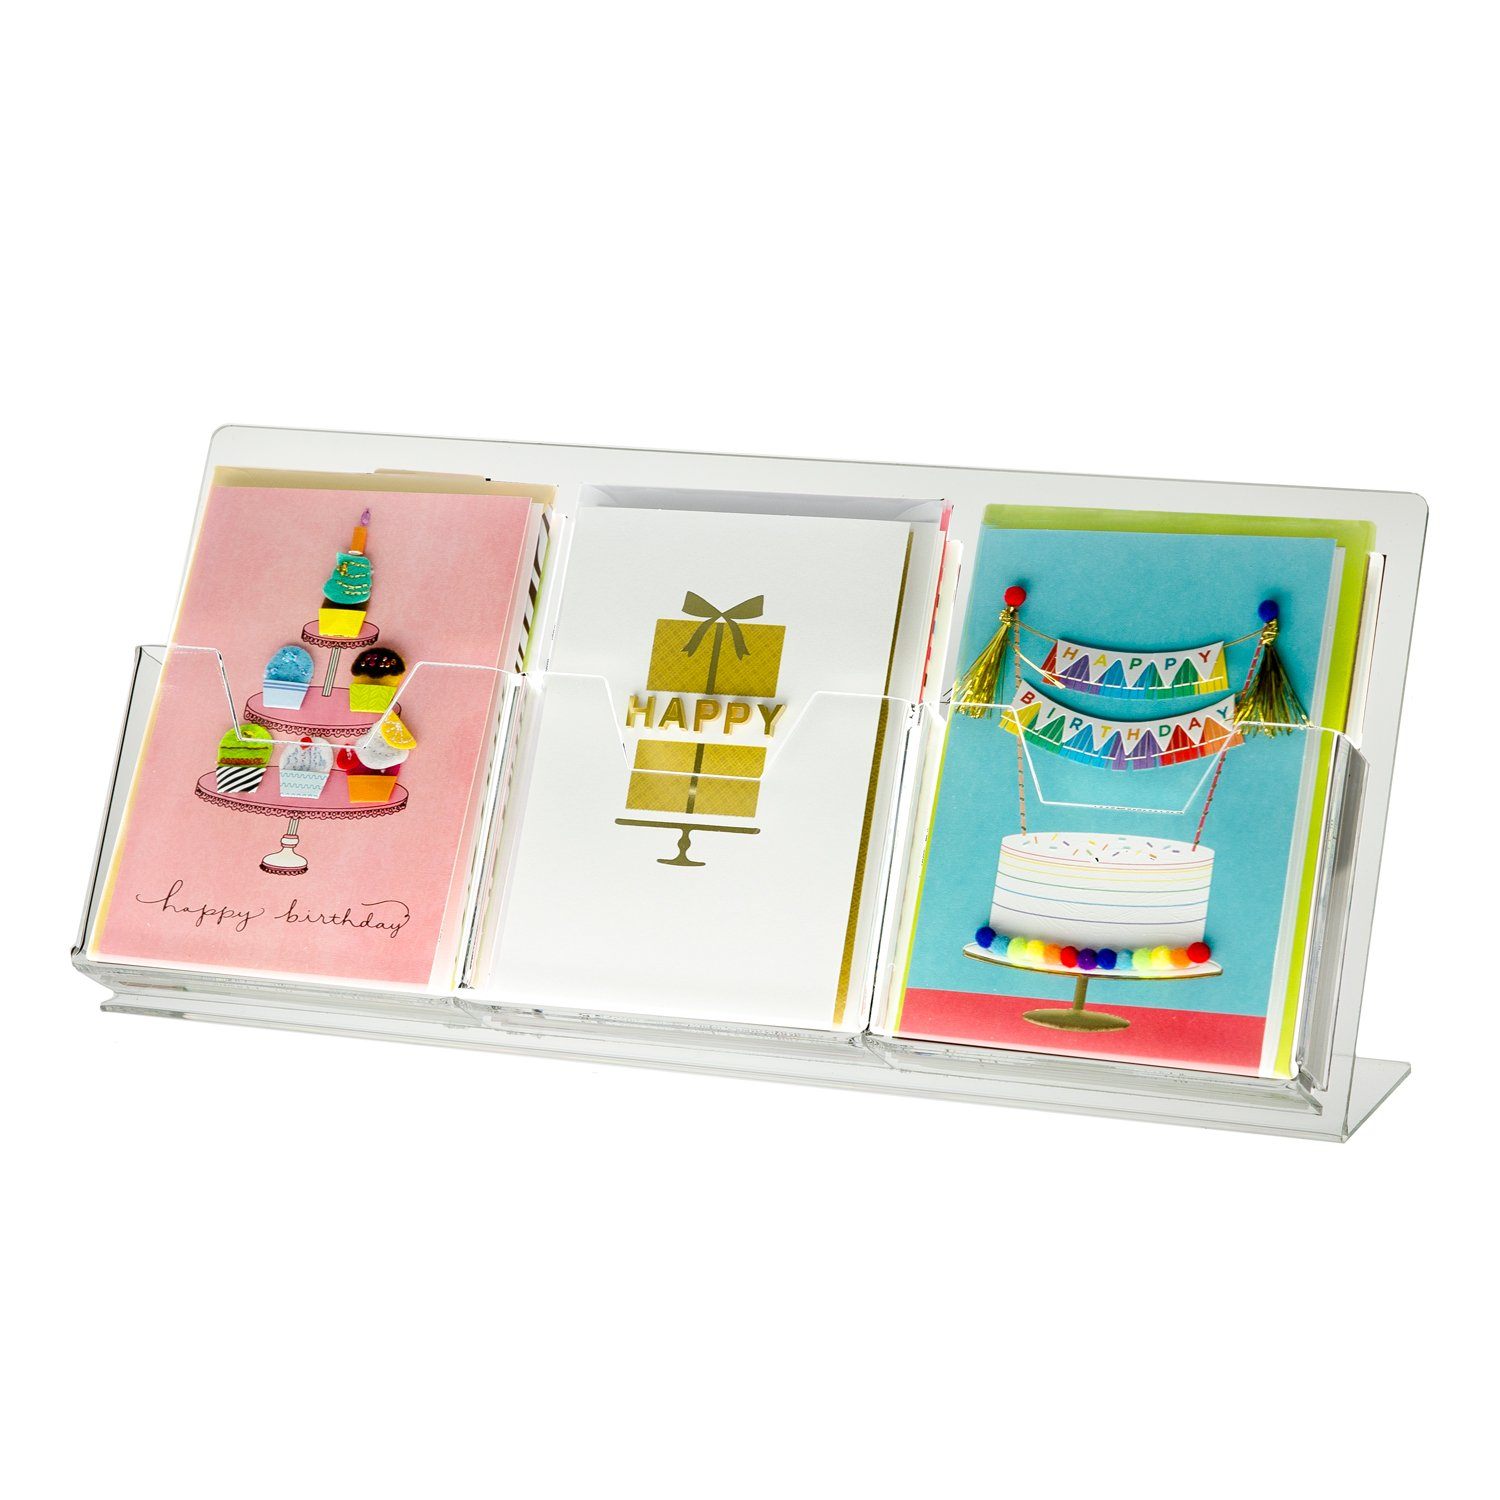 Amazon Source One Deluxe Clear Acrylic Countertop Greeting Card